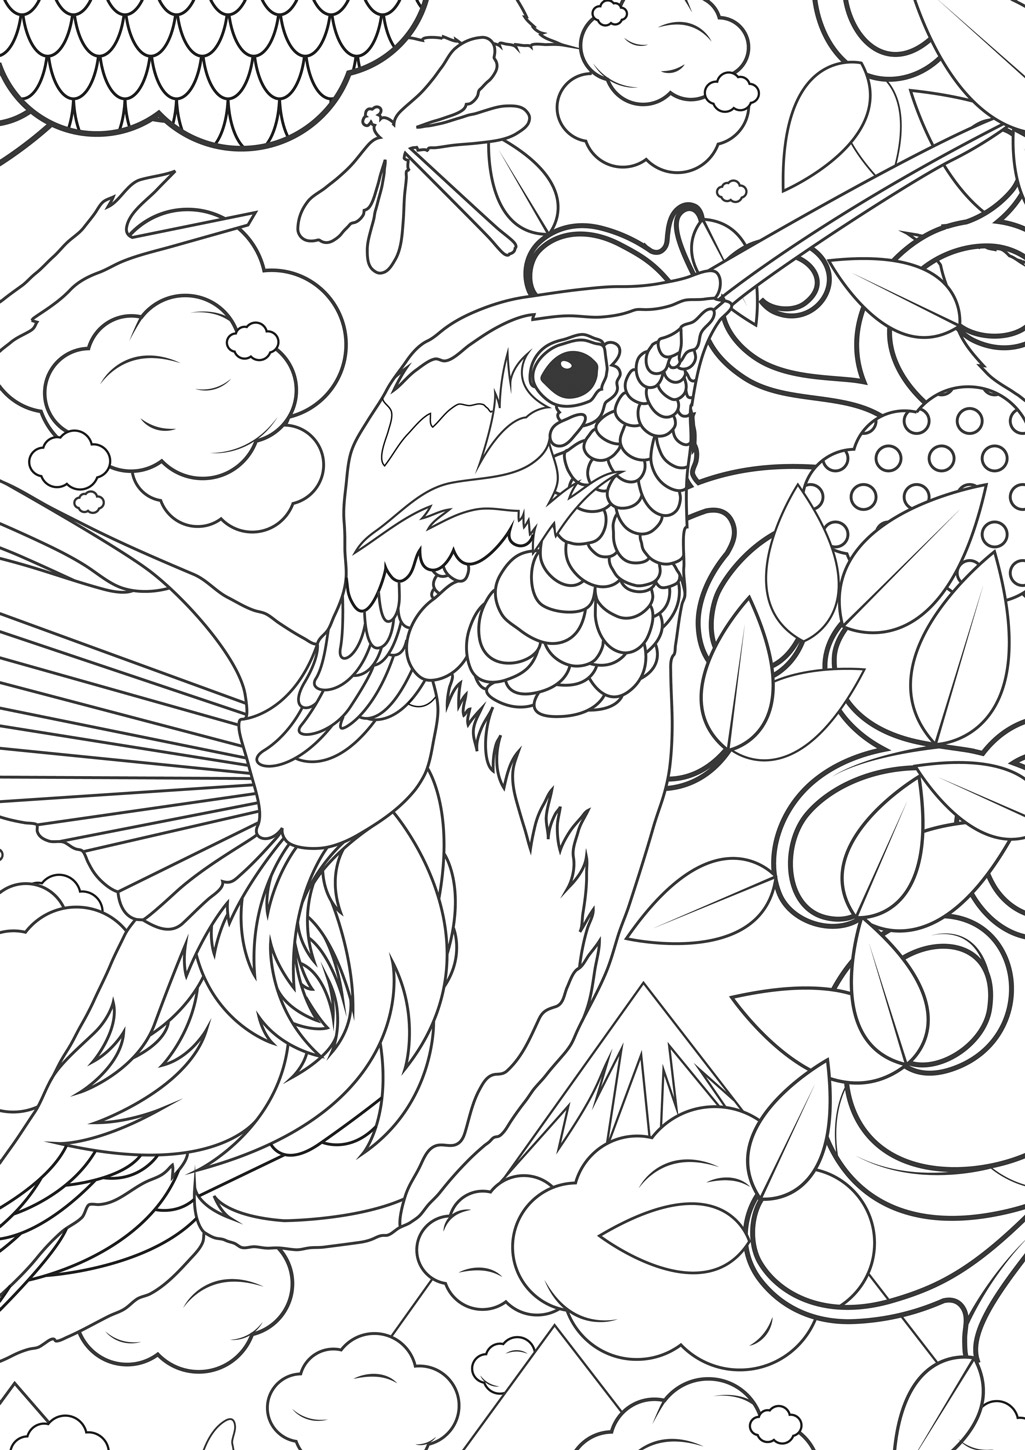 1025x1450 Advanced Coloring Pages For Older Kids Colorings